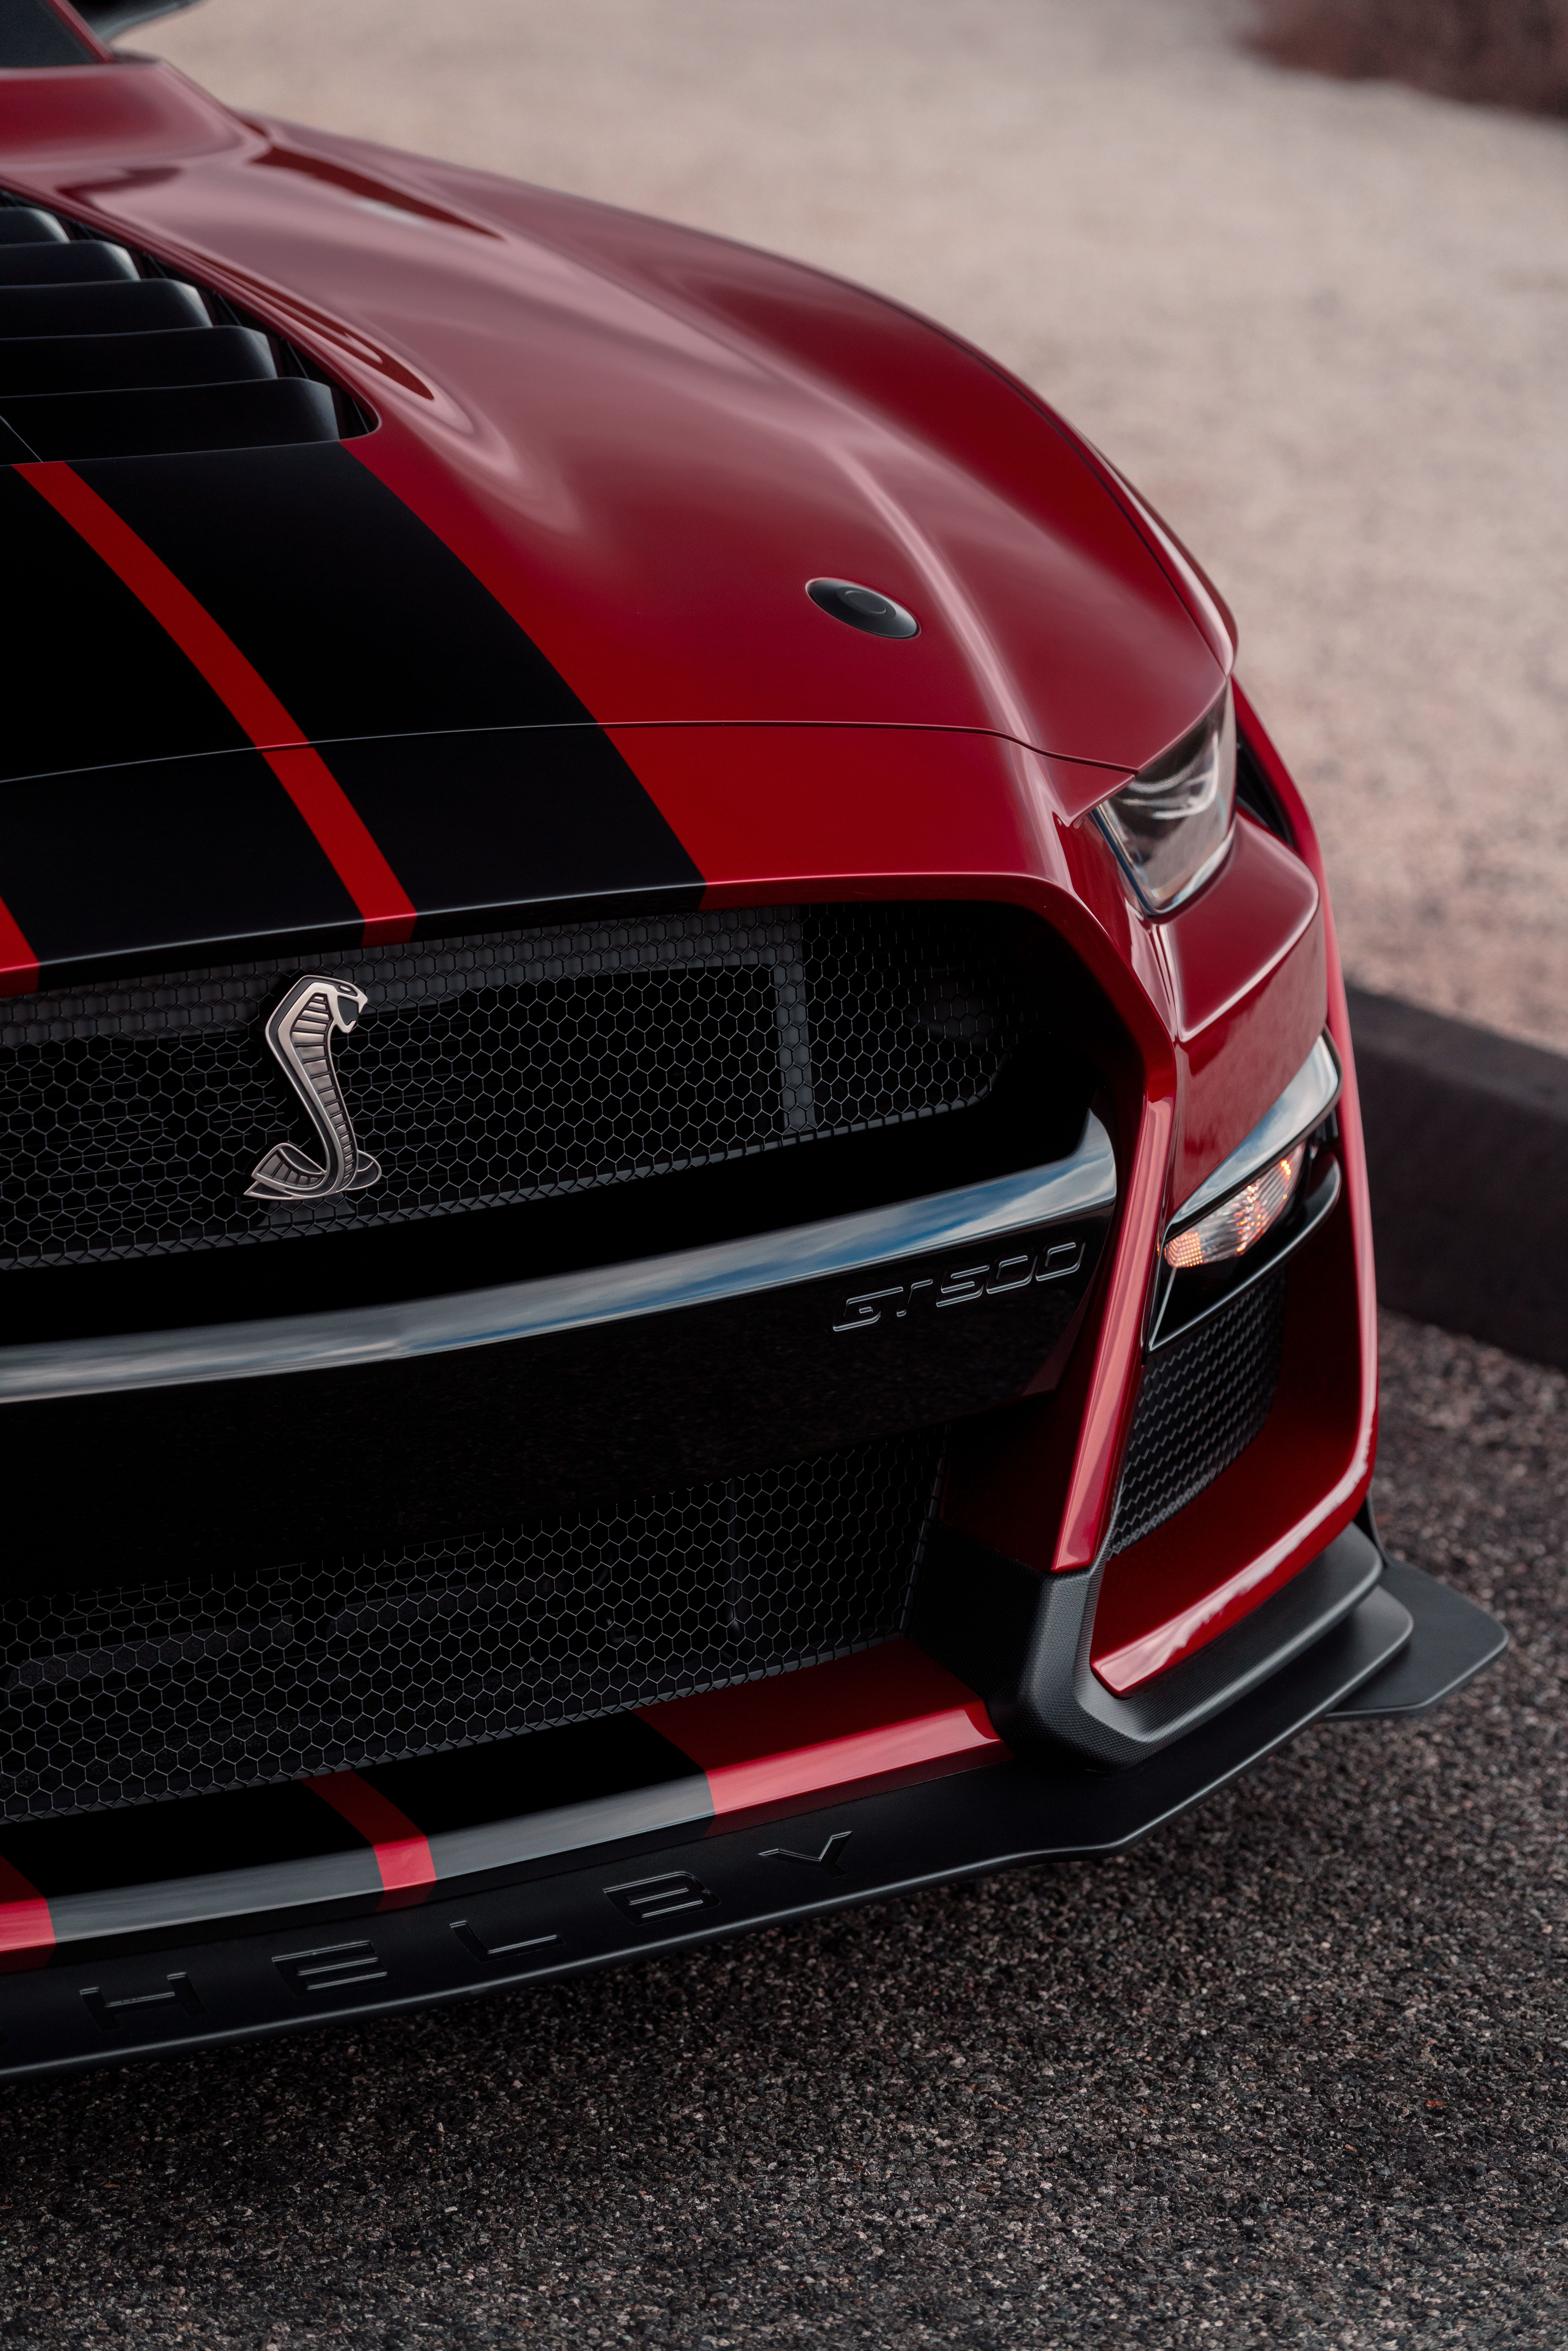 The 2020 Ford Mustang Shelby Gt500 Is Bringing The Heat With 760 Hp Ford Mustang Shelby Gt500 Ford Mustang Shelby Mustang Shelby